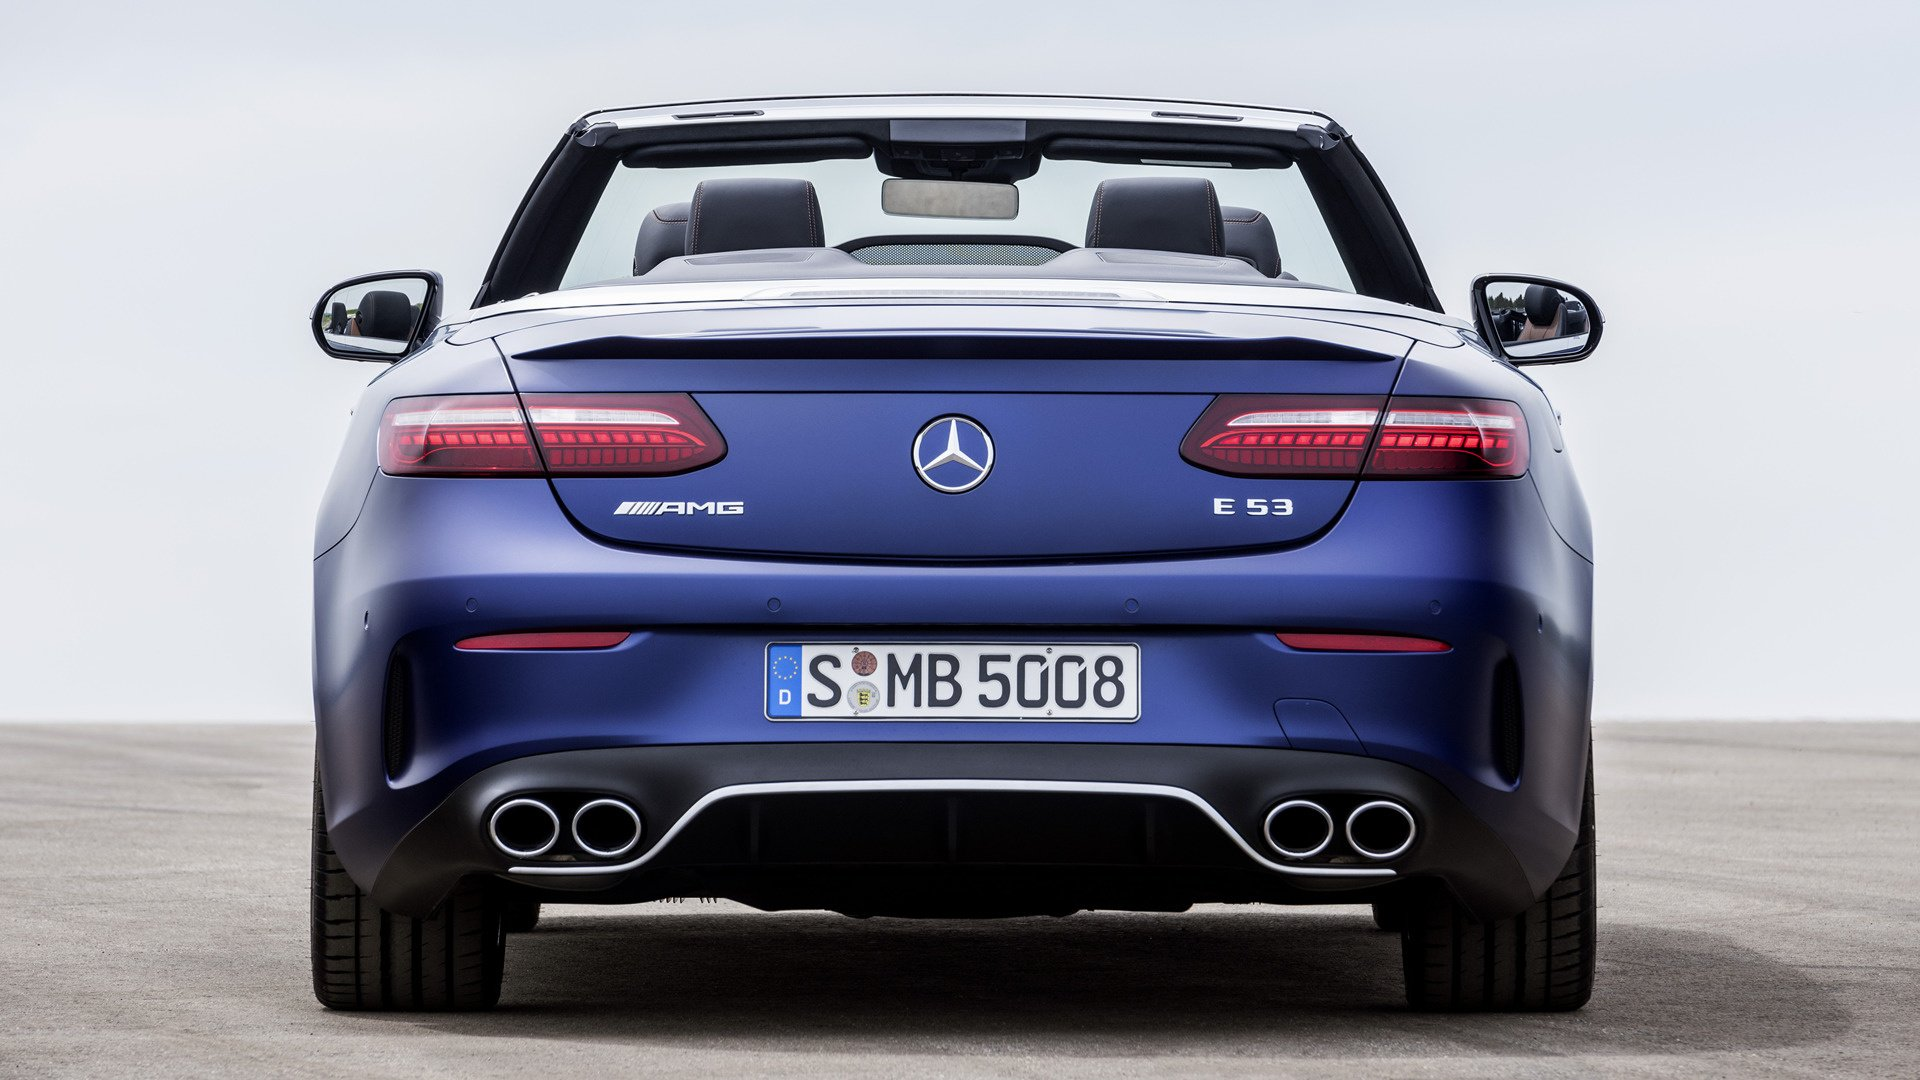 2020 Mercedes Amg E 53 Cabriolet Hd Wallpaper Background Image 1920x1080 Id 1102039 Wallpaper Abyss